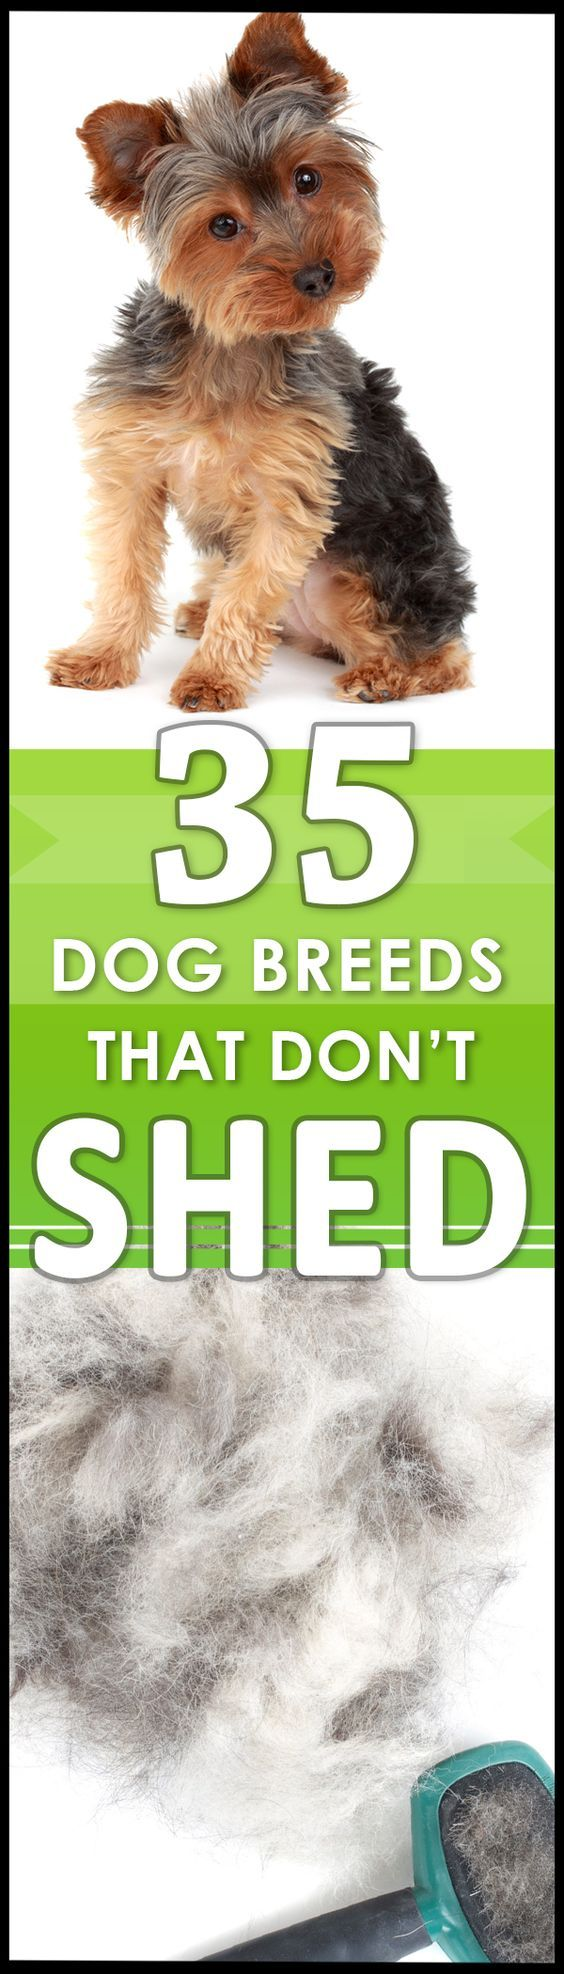 Large Dogs That Shed Minimally